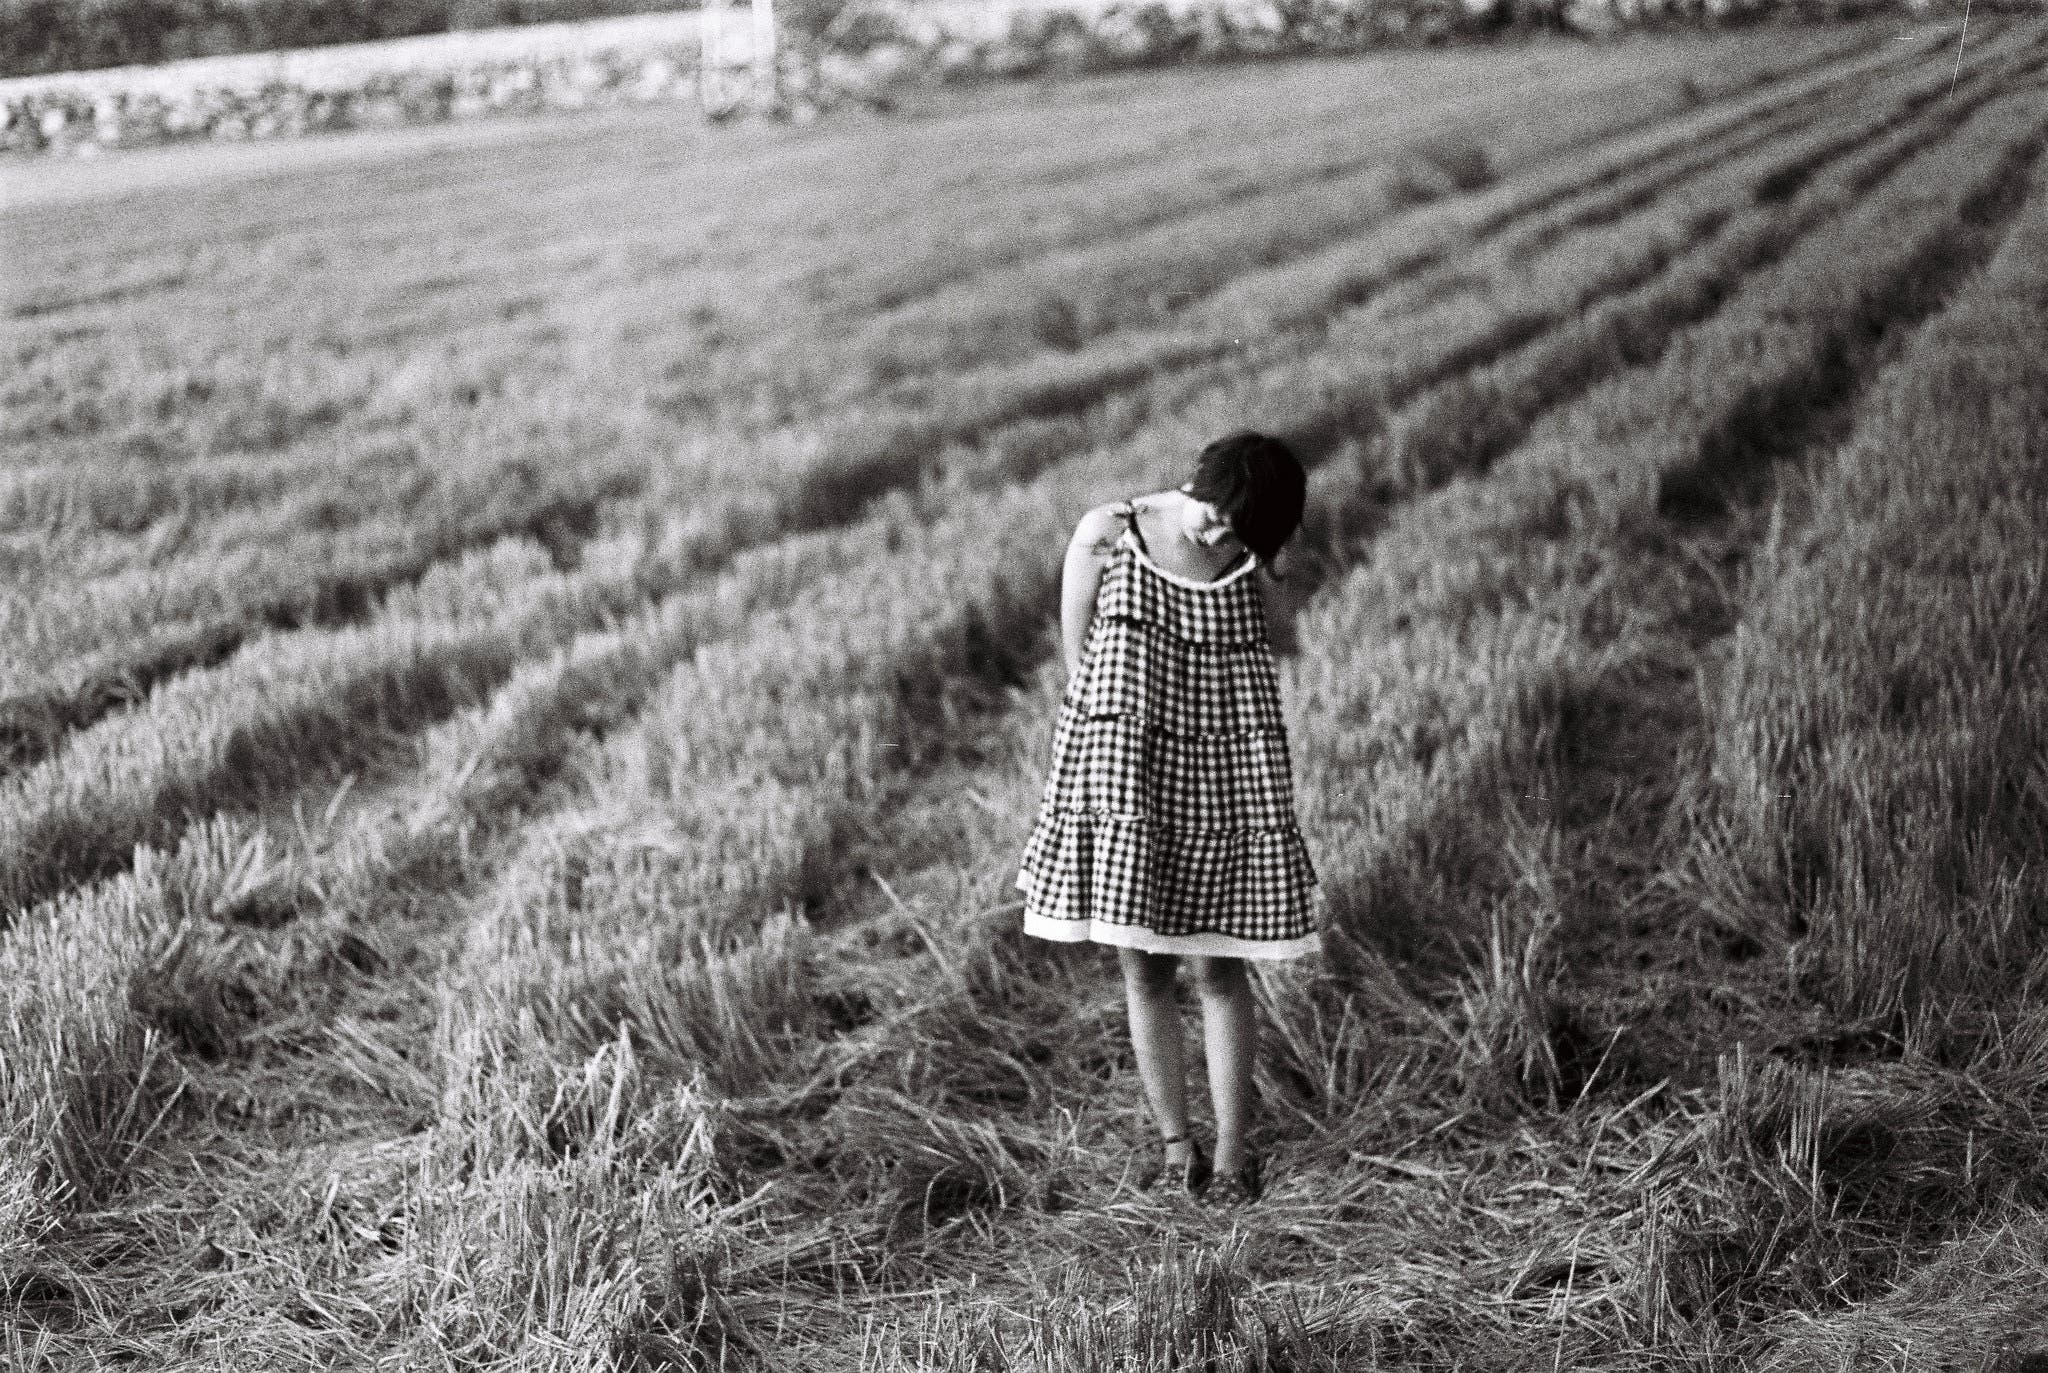 Photographers Who Shoot Kodak T-Max 400: We'd Love to Feature You!